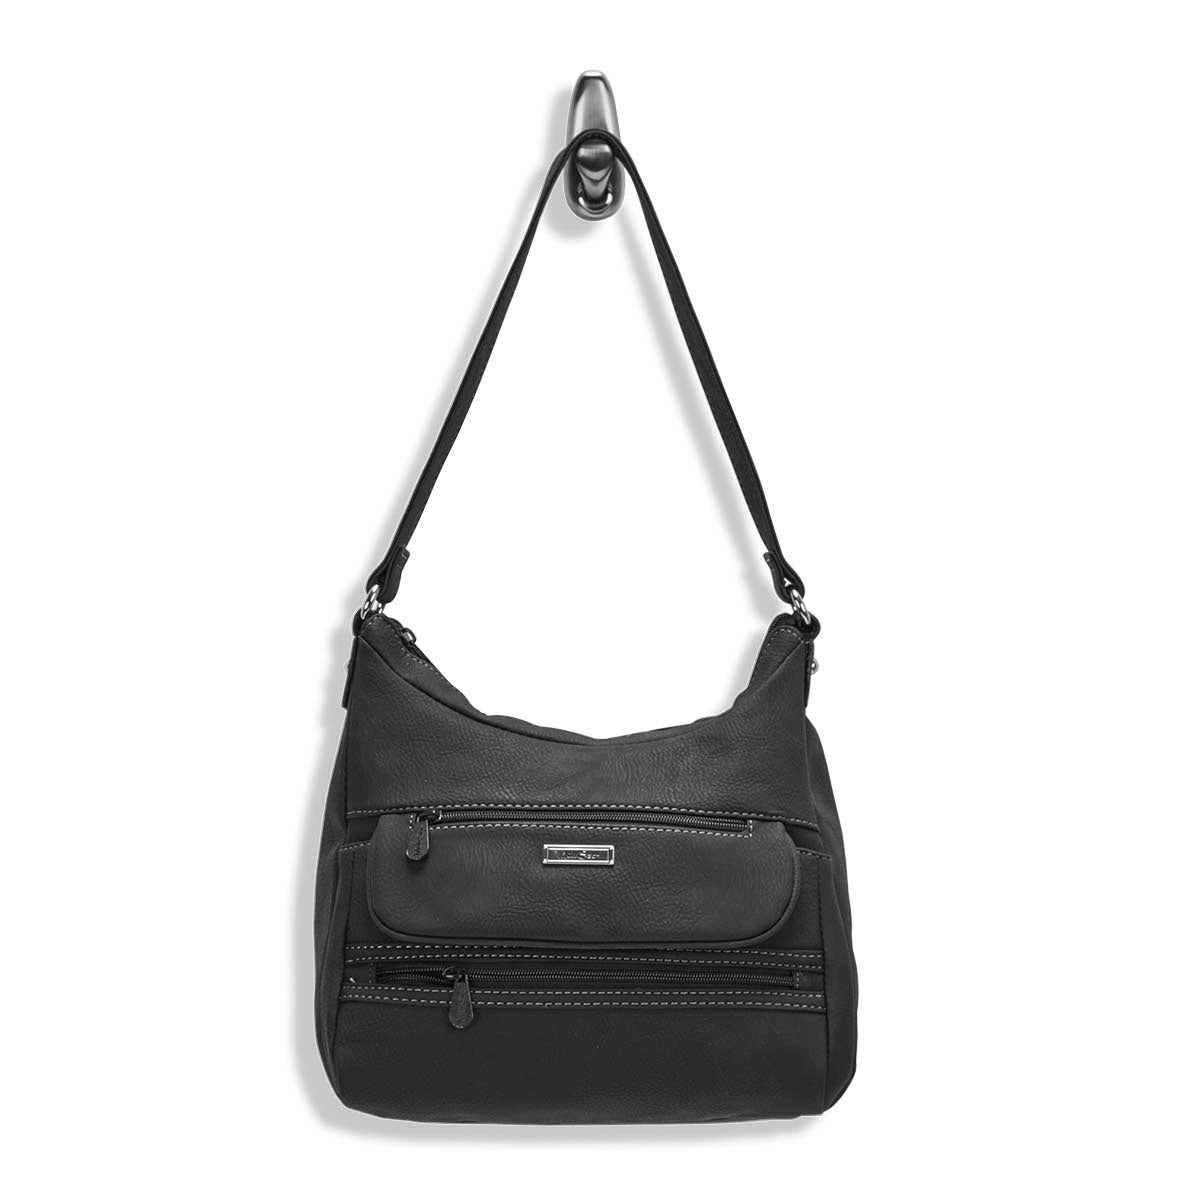 Lds Multi Element black hobo bag